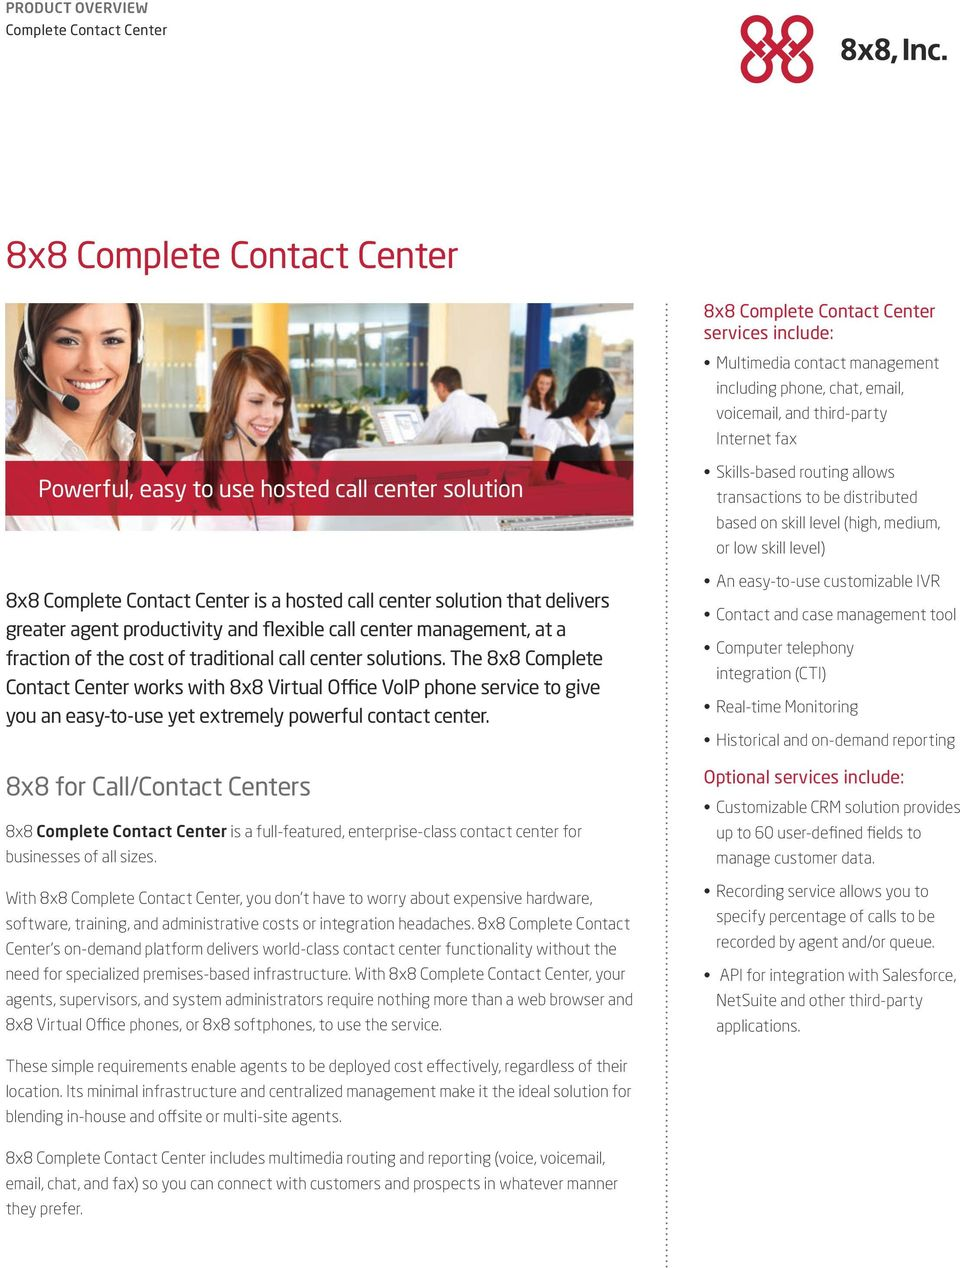 The 8x8 Complete Contact Center works with 8x8 Virtual Office VoIP phone service to give you an easy-to-use yet extremely powerful contact center.